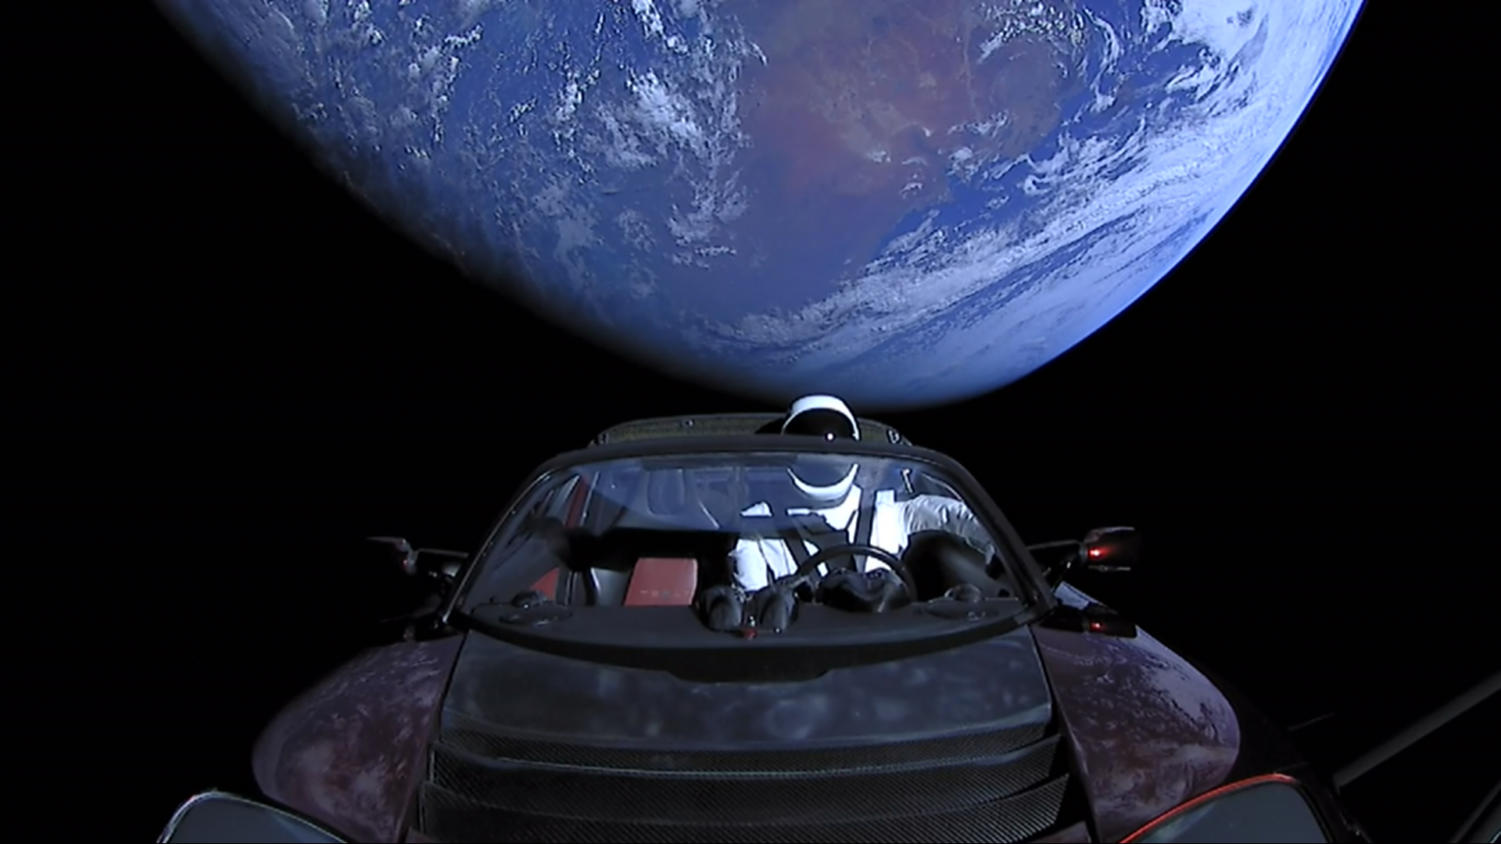 Elon Musk strapped his own Tesla Roadster onto the most powerful rocket launched from US soil since the 1970s.